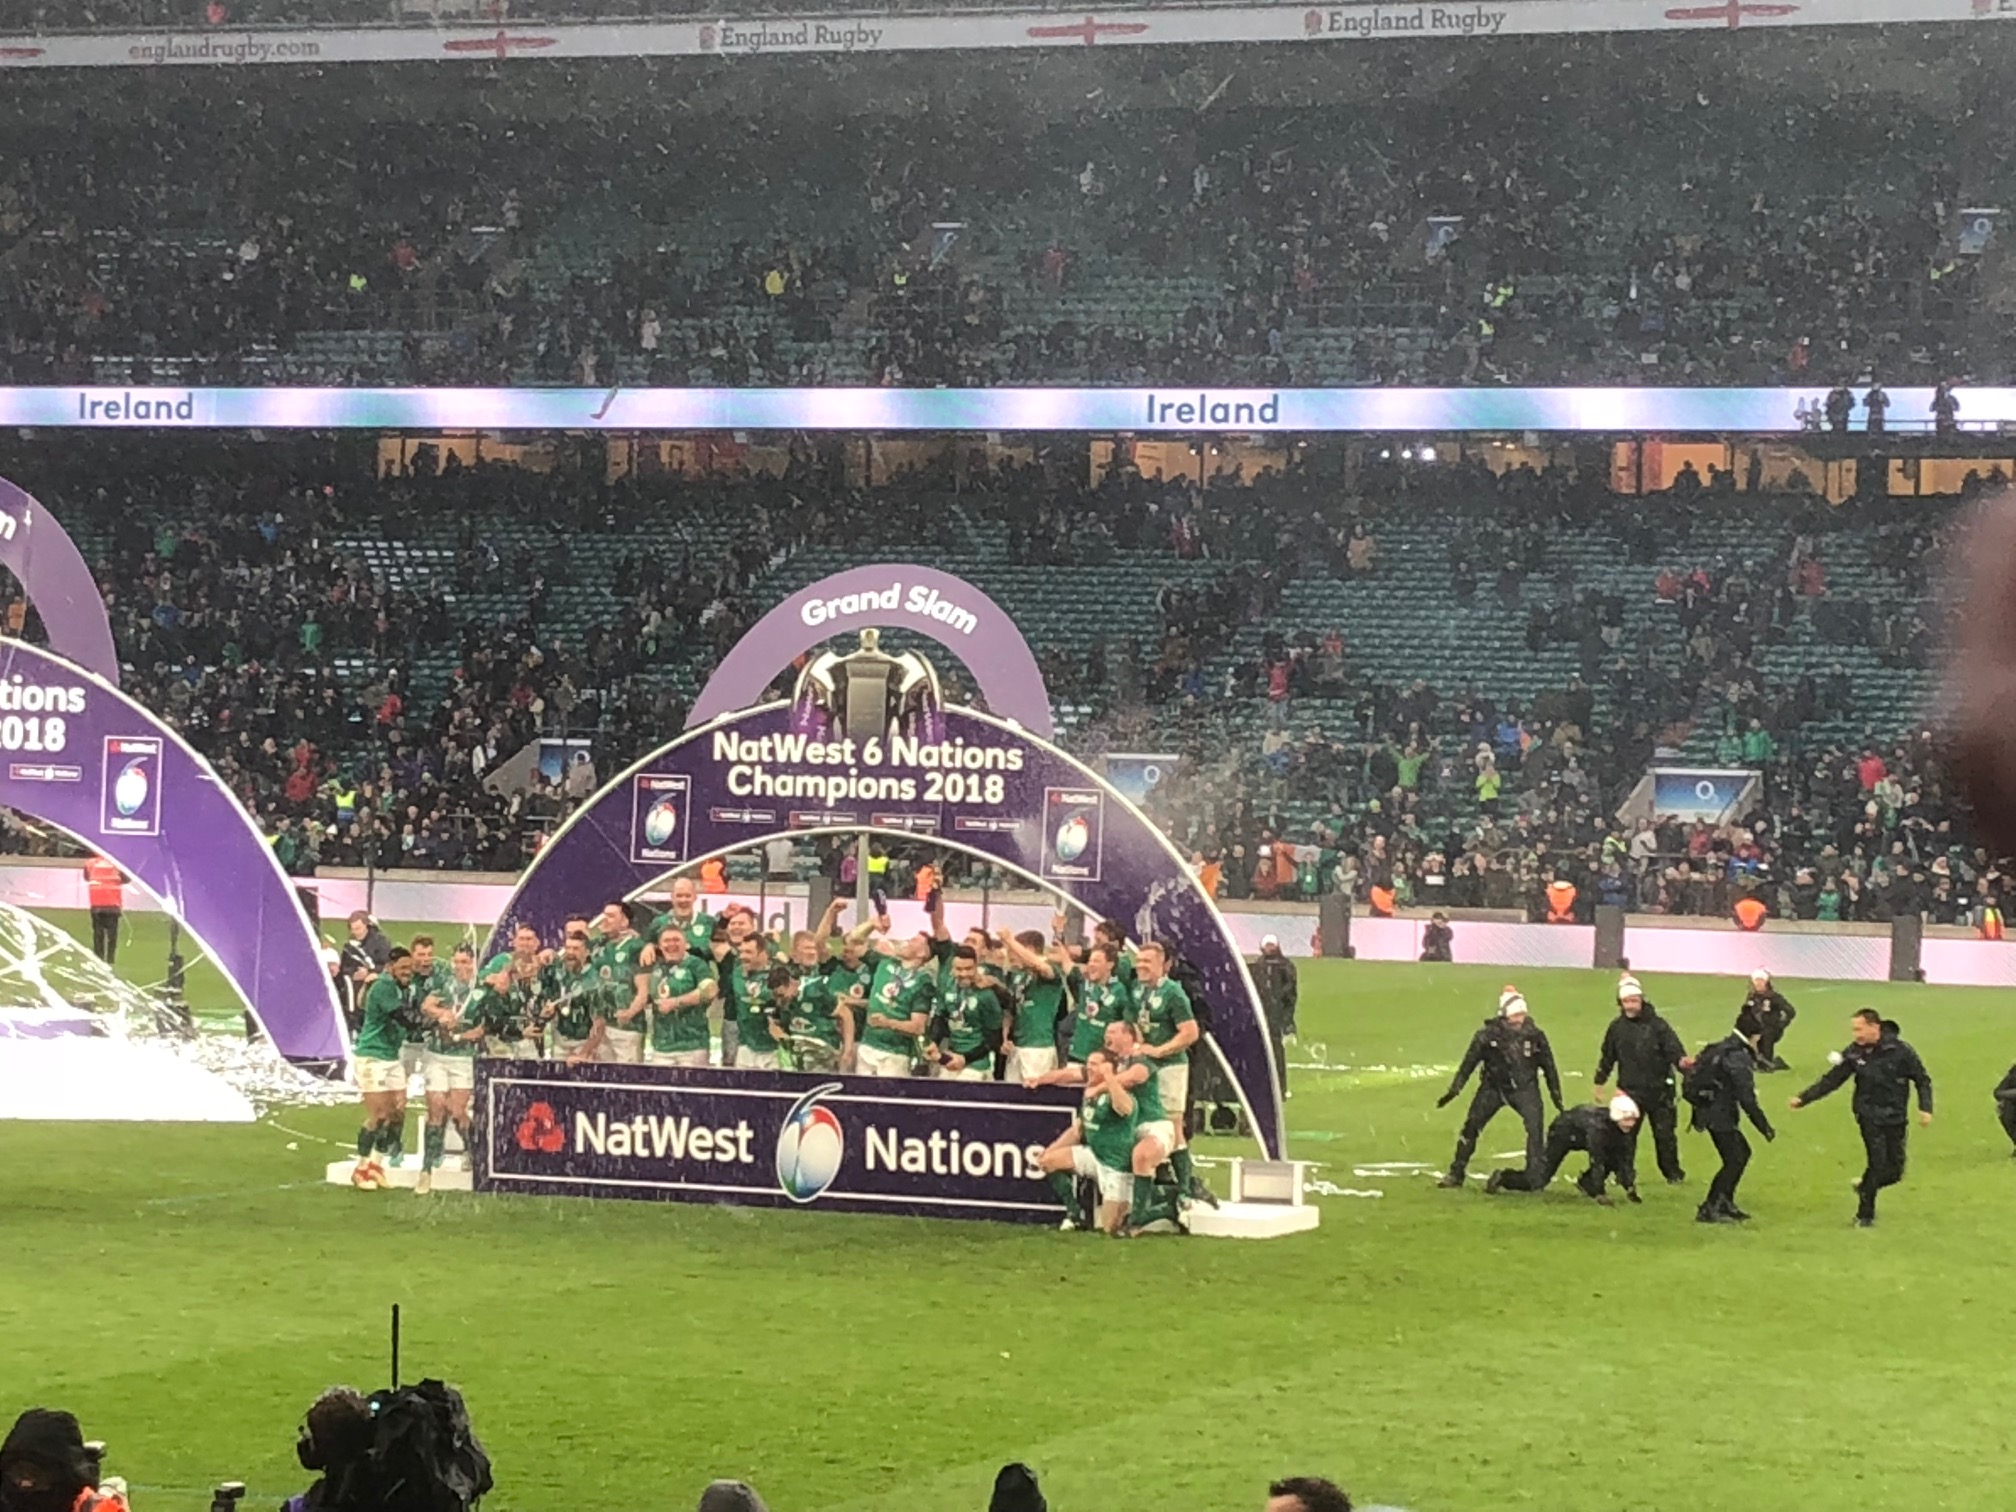 Ireland celebrate winning the 2018 Nat West 6 Nations Trophy , the Grand Slam and the Triple Crown